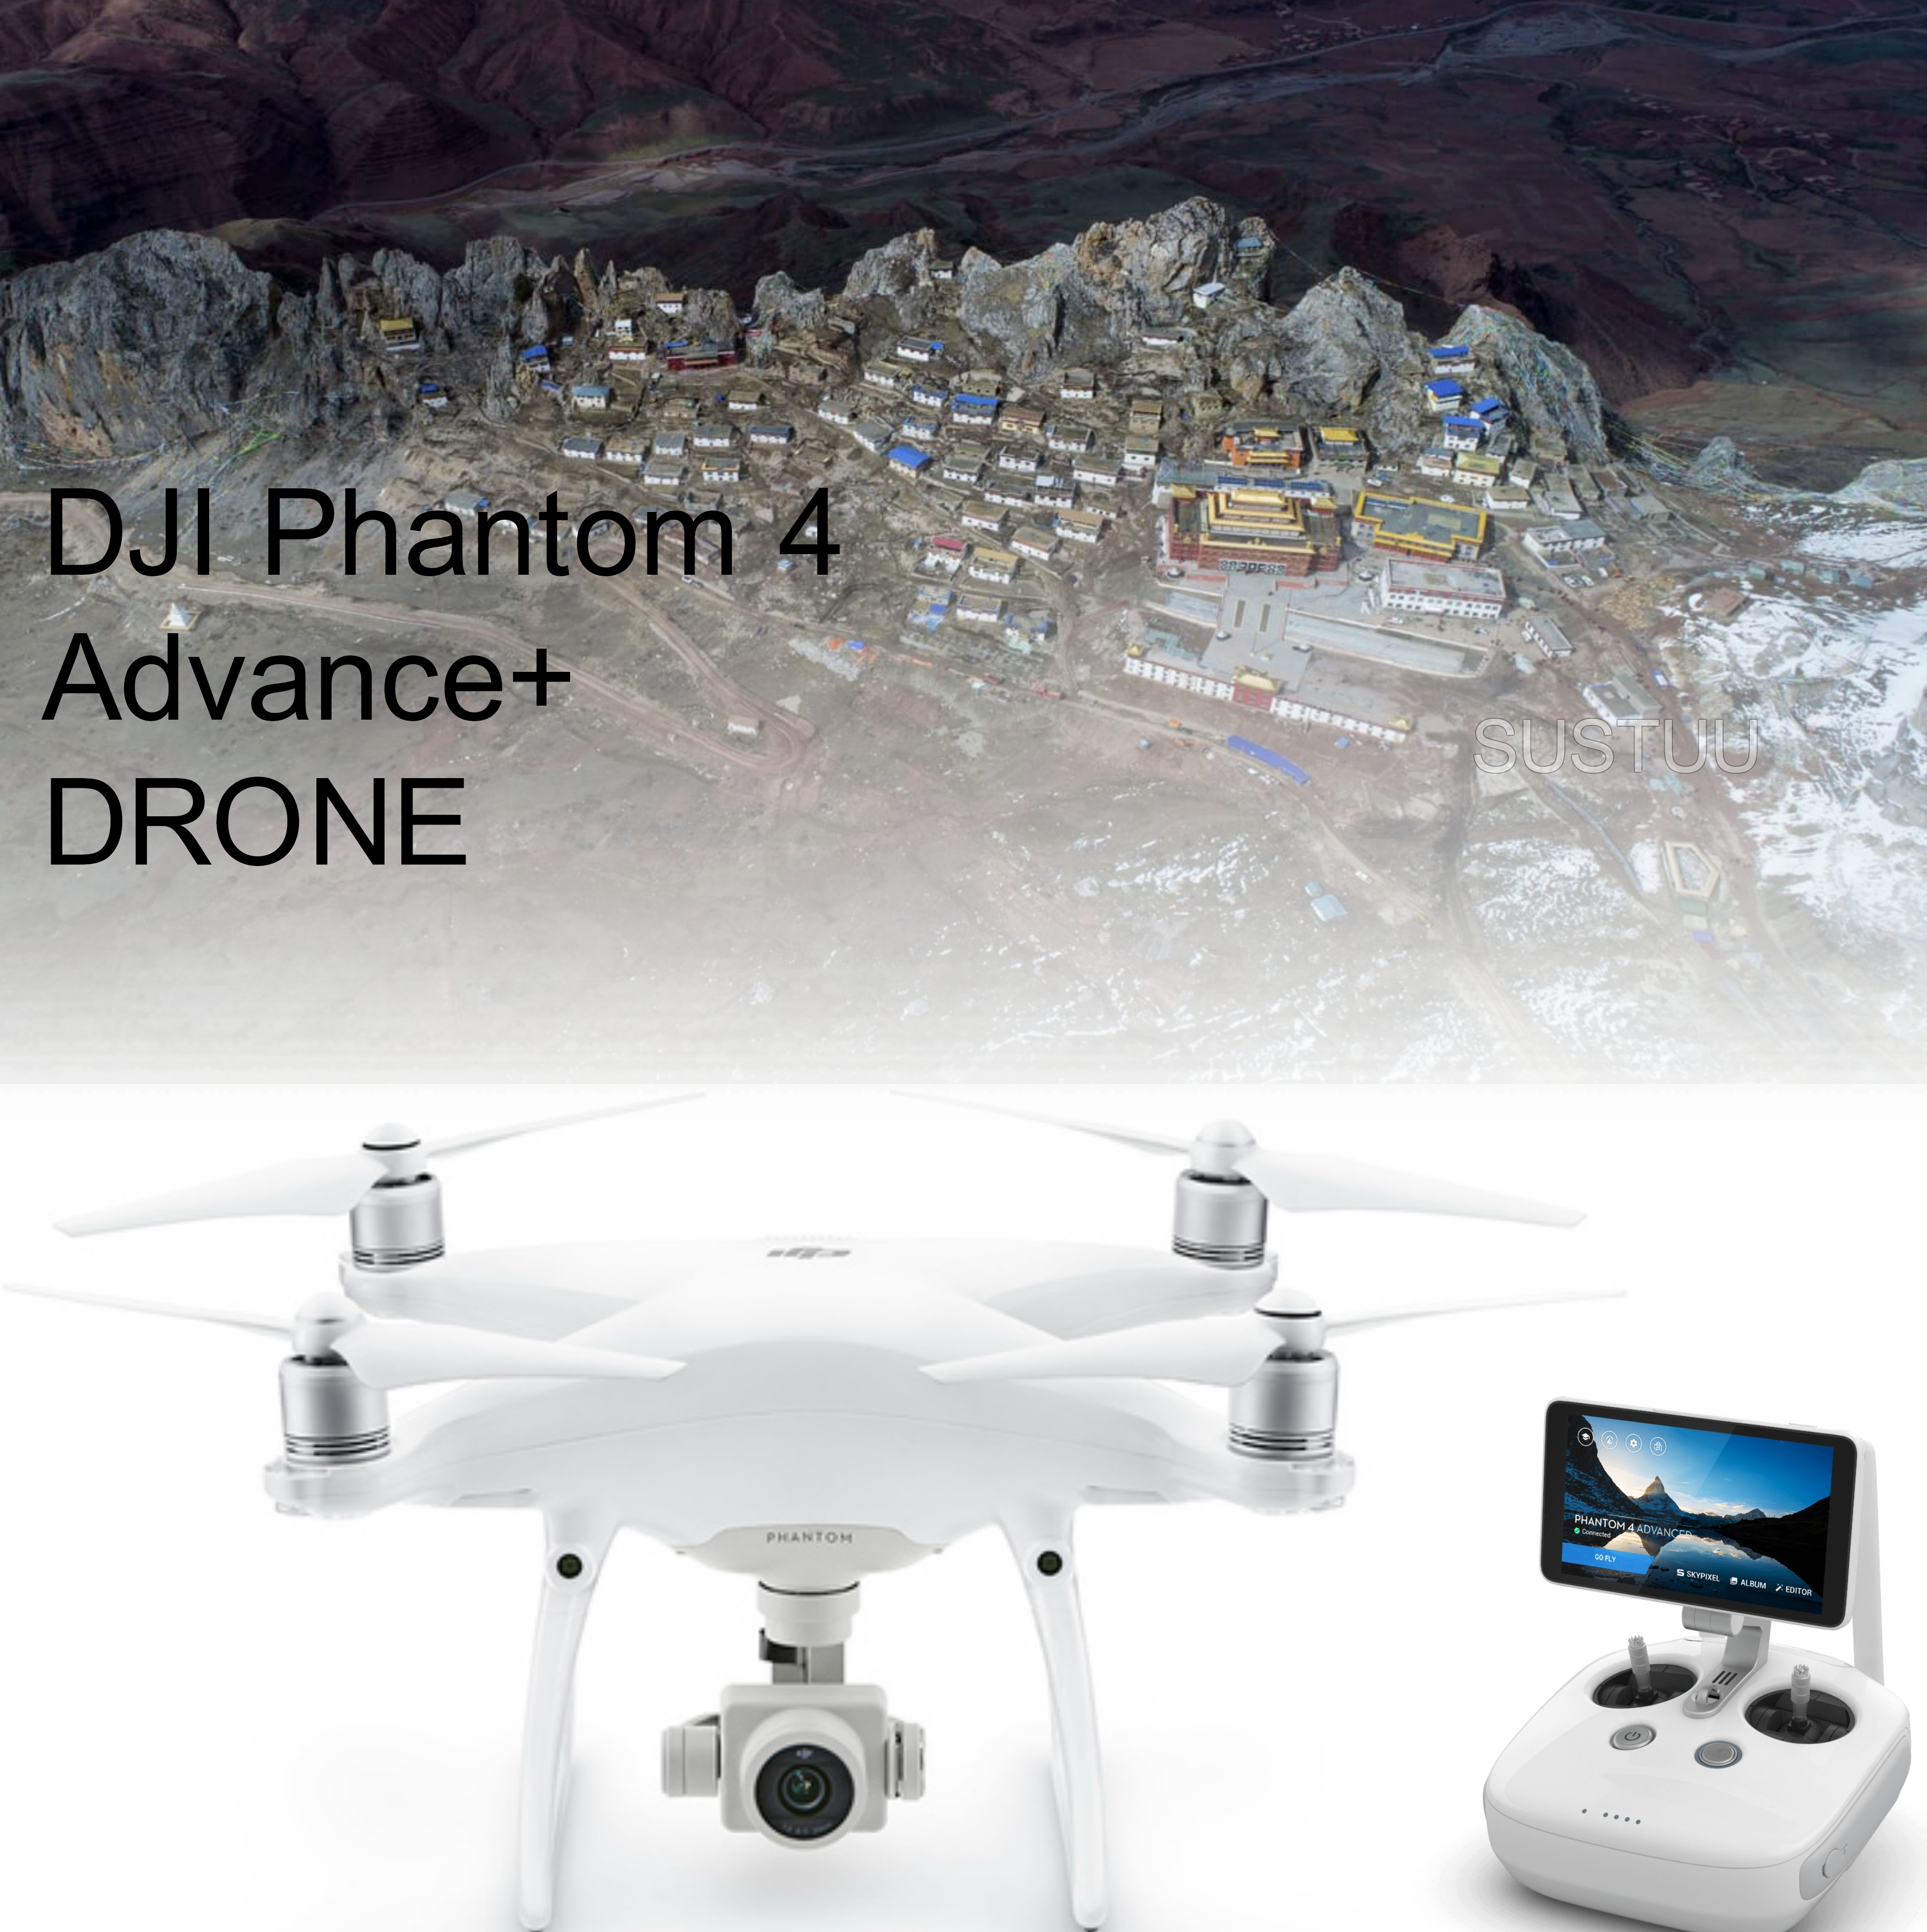 DJI Phantom 4 Advanced+ Drone|HD Video Transmission|5 Vision Sensor|CP.PT.000697